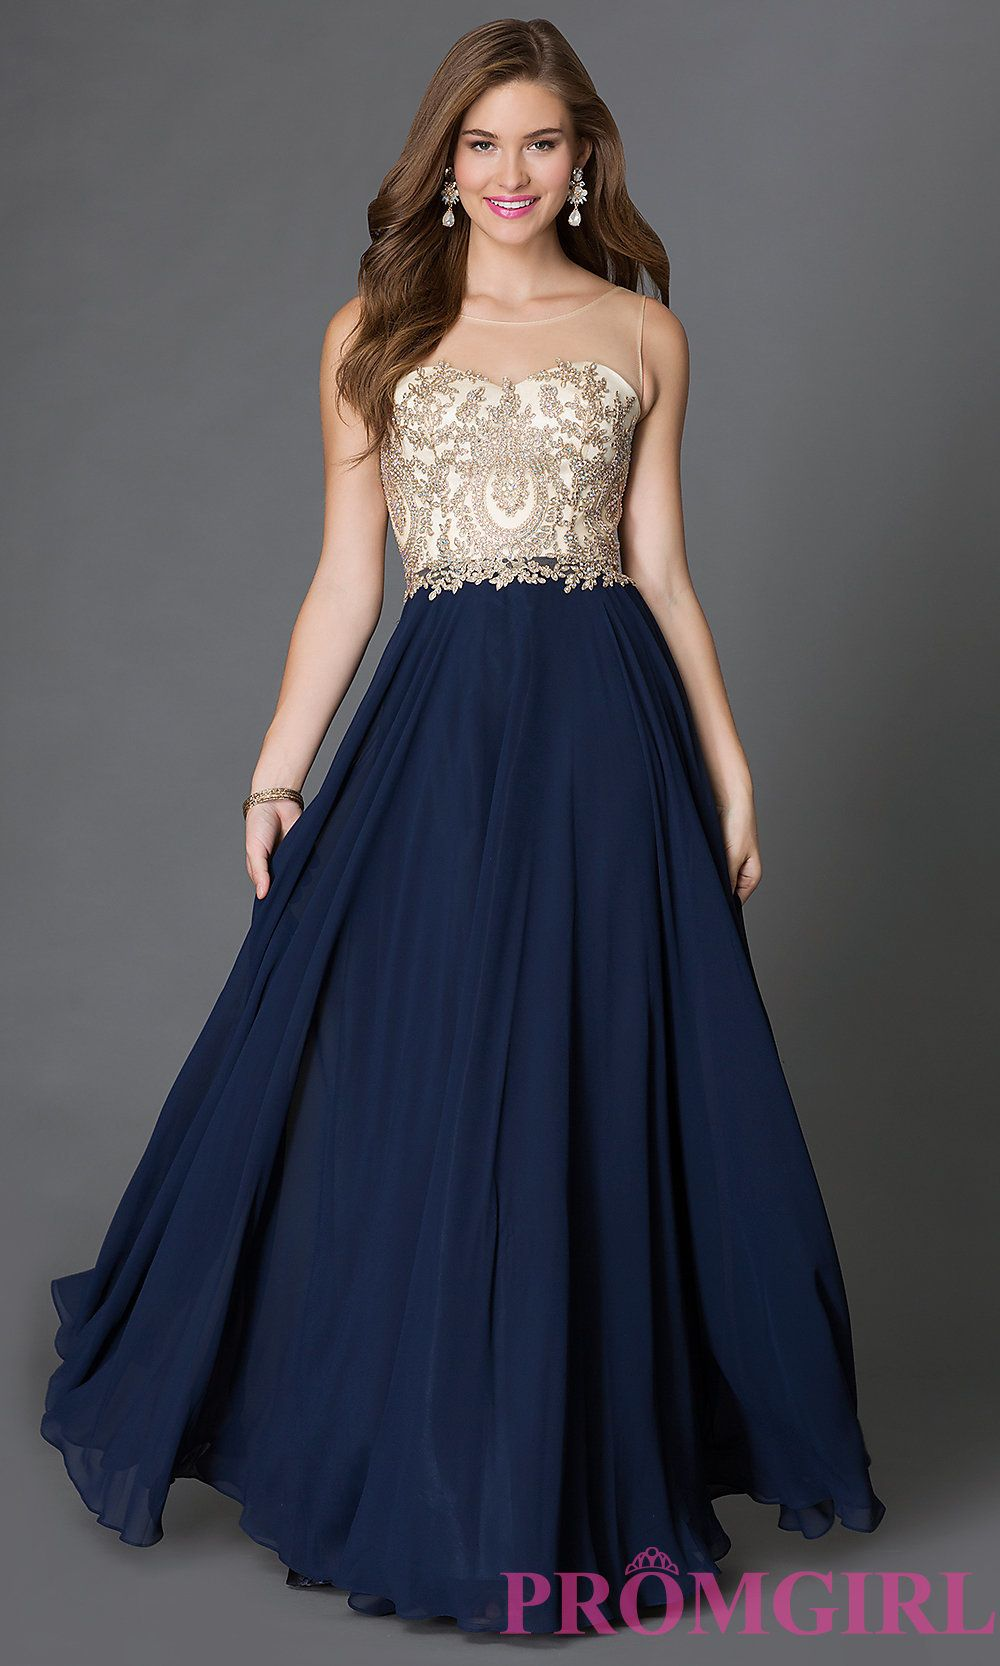 Long Sleeveless Prom Dress with Jeweled Sheer Bodice | Prom dress ...